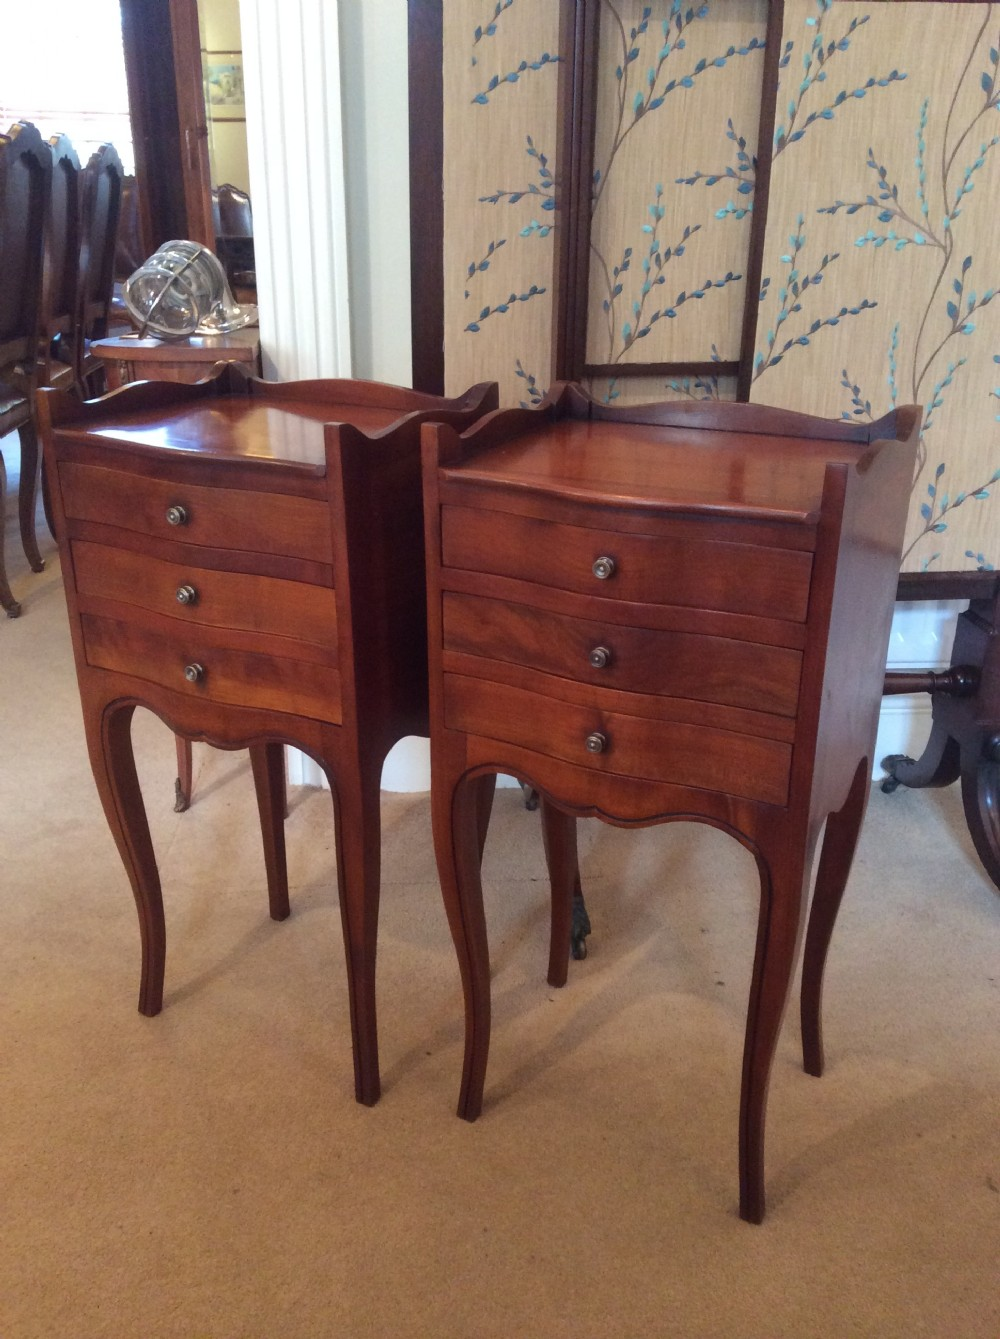 pair of french antique bedside tables - Pair Of French Antique Bedside Tables 284094 Sellingantiques.co.uk